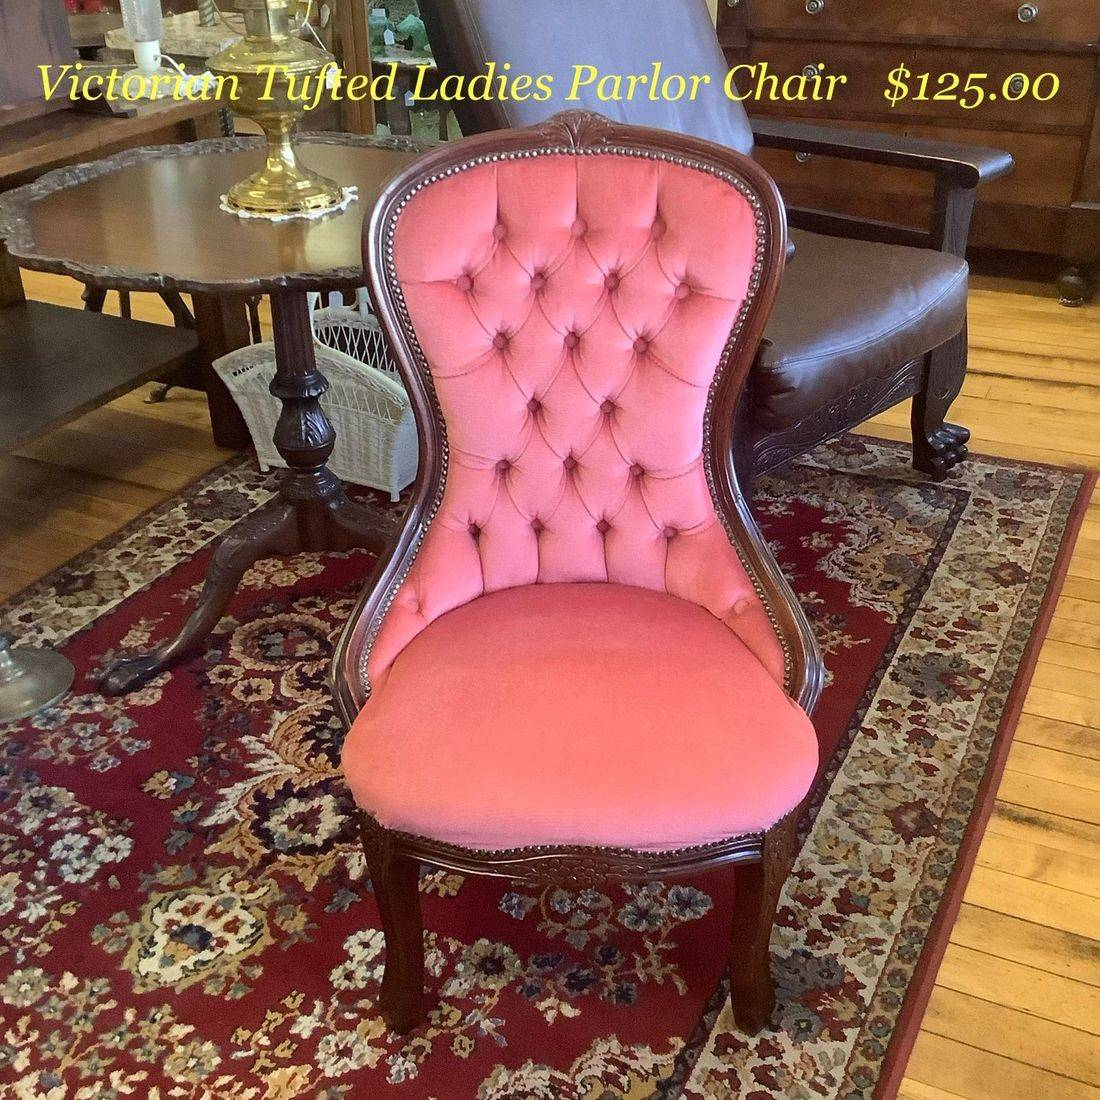 Victorian Tufted Ladies Parlor Chair   $125.00